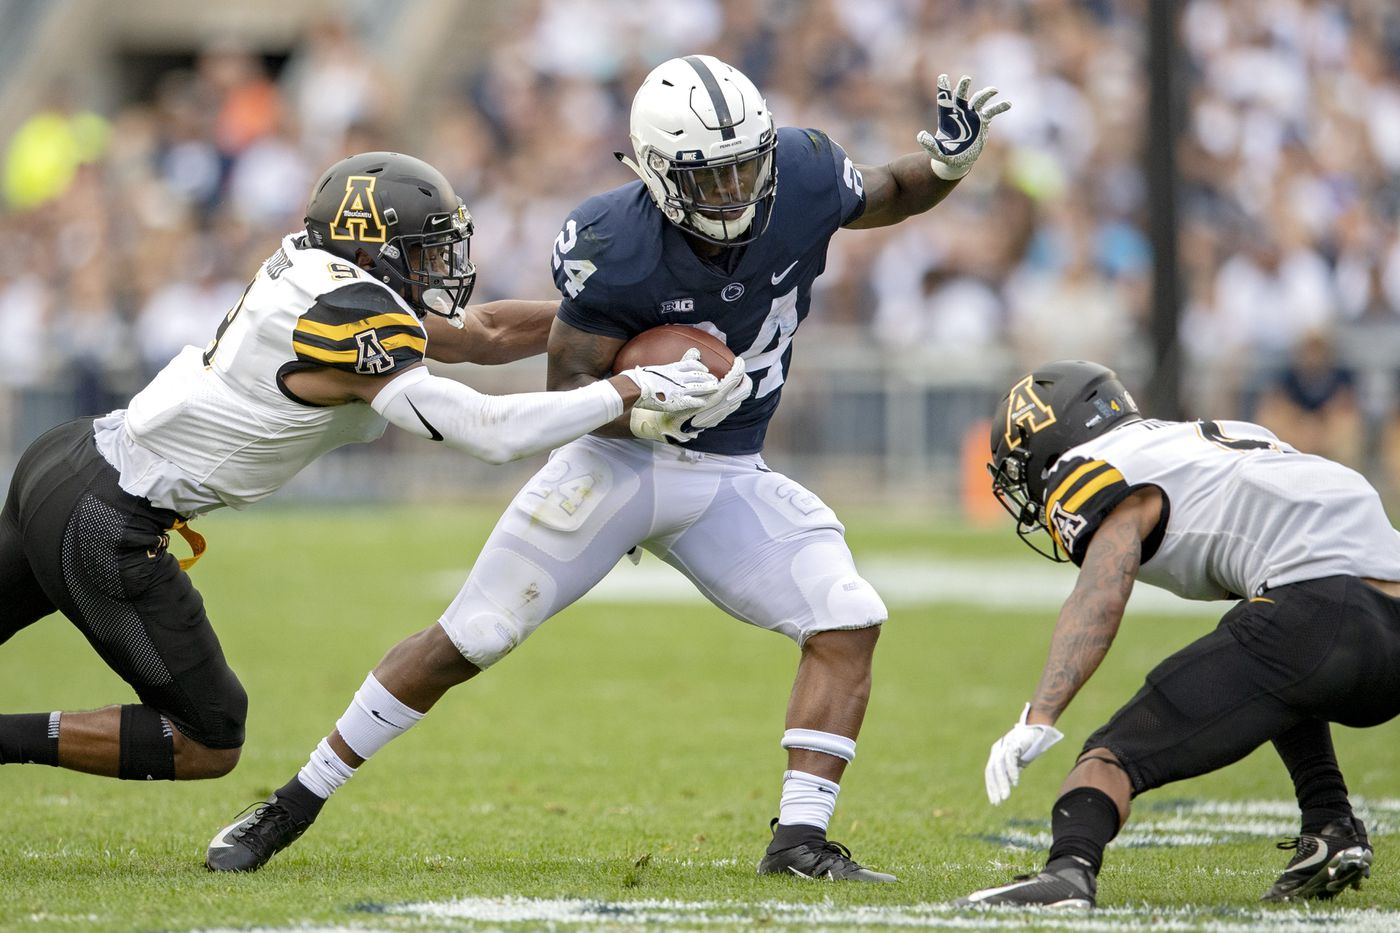 Penn State's win over Appalachian State: Five observations